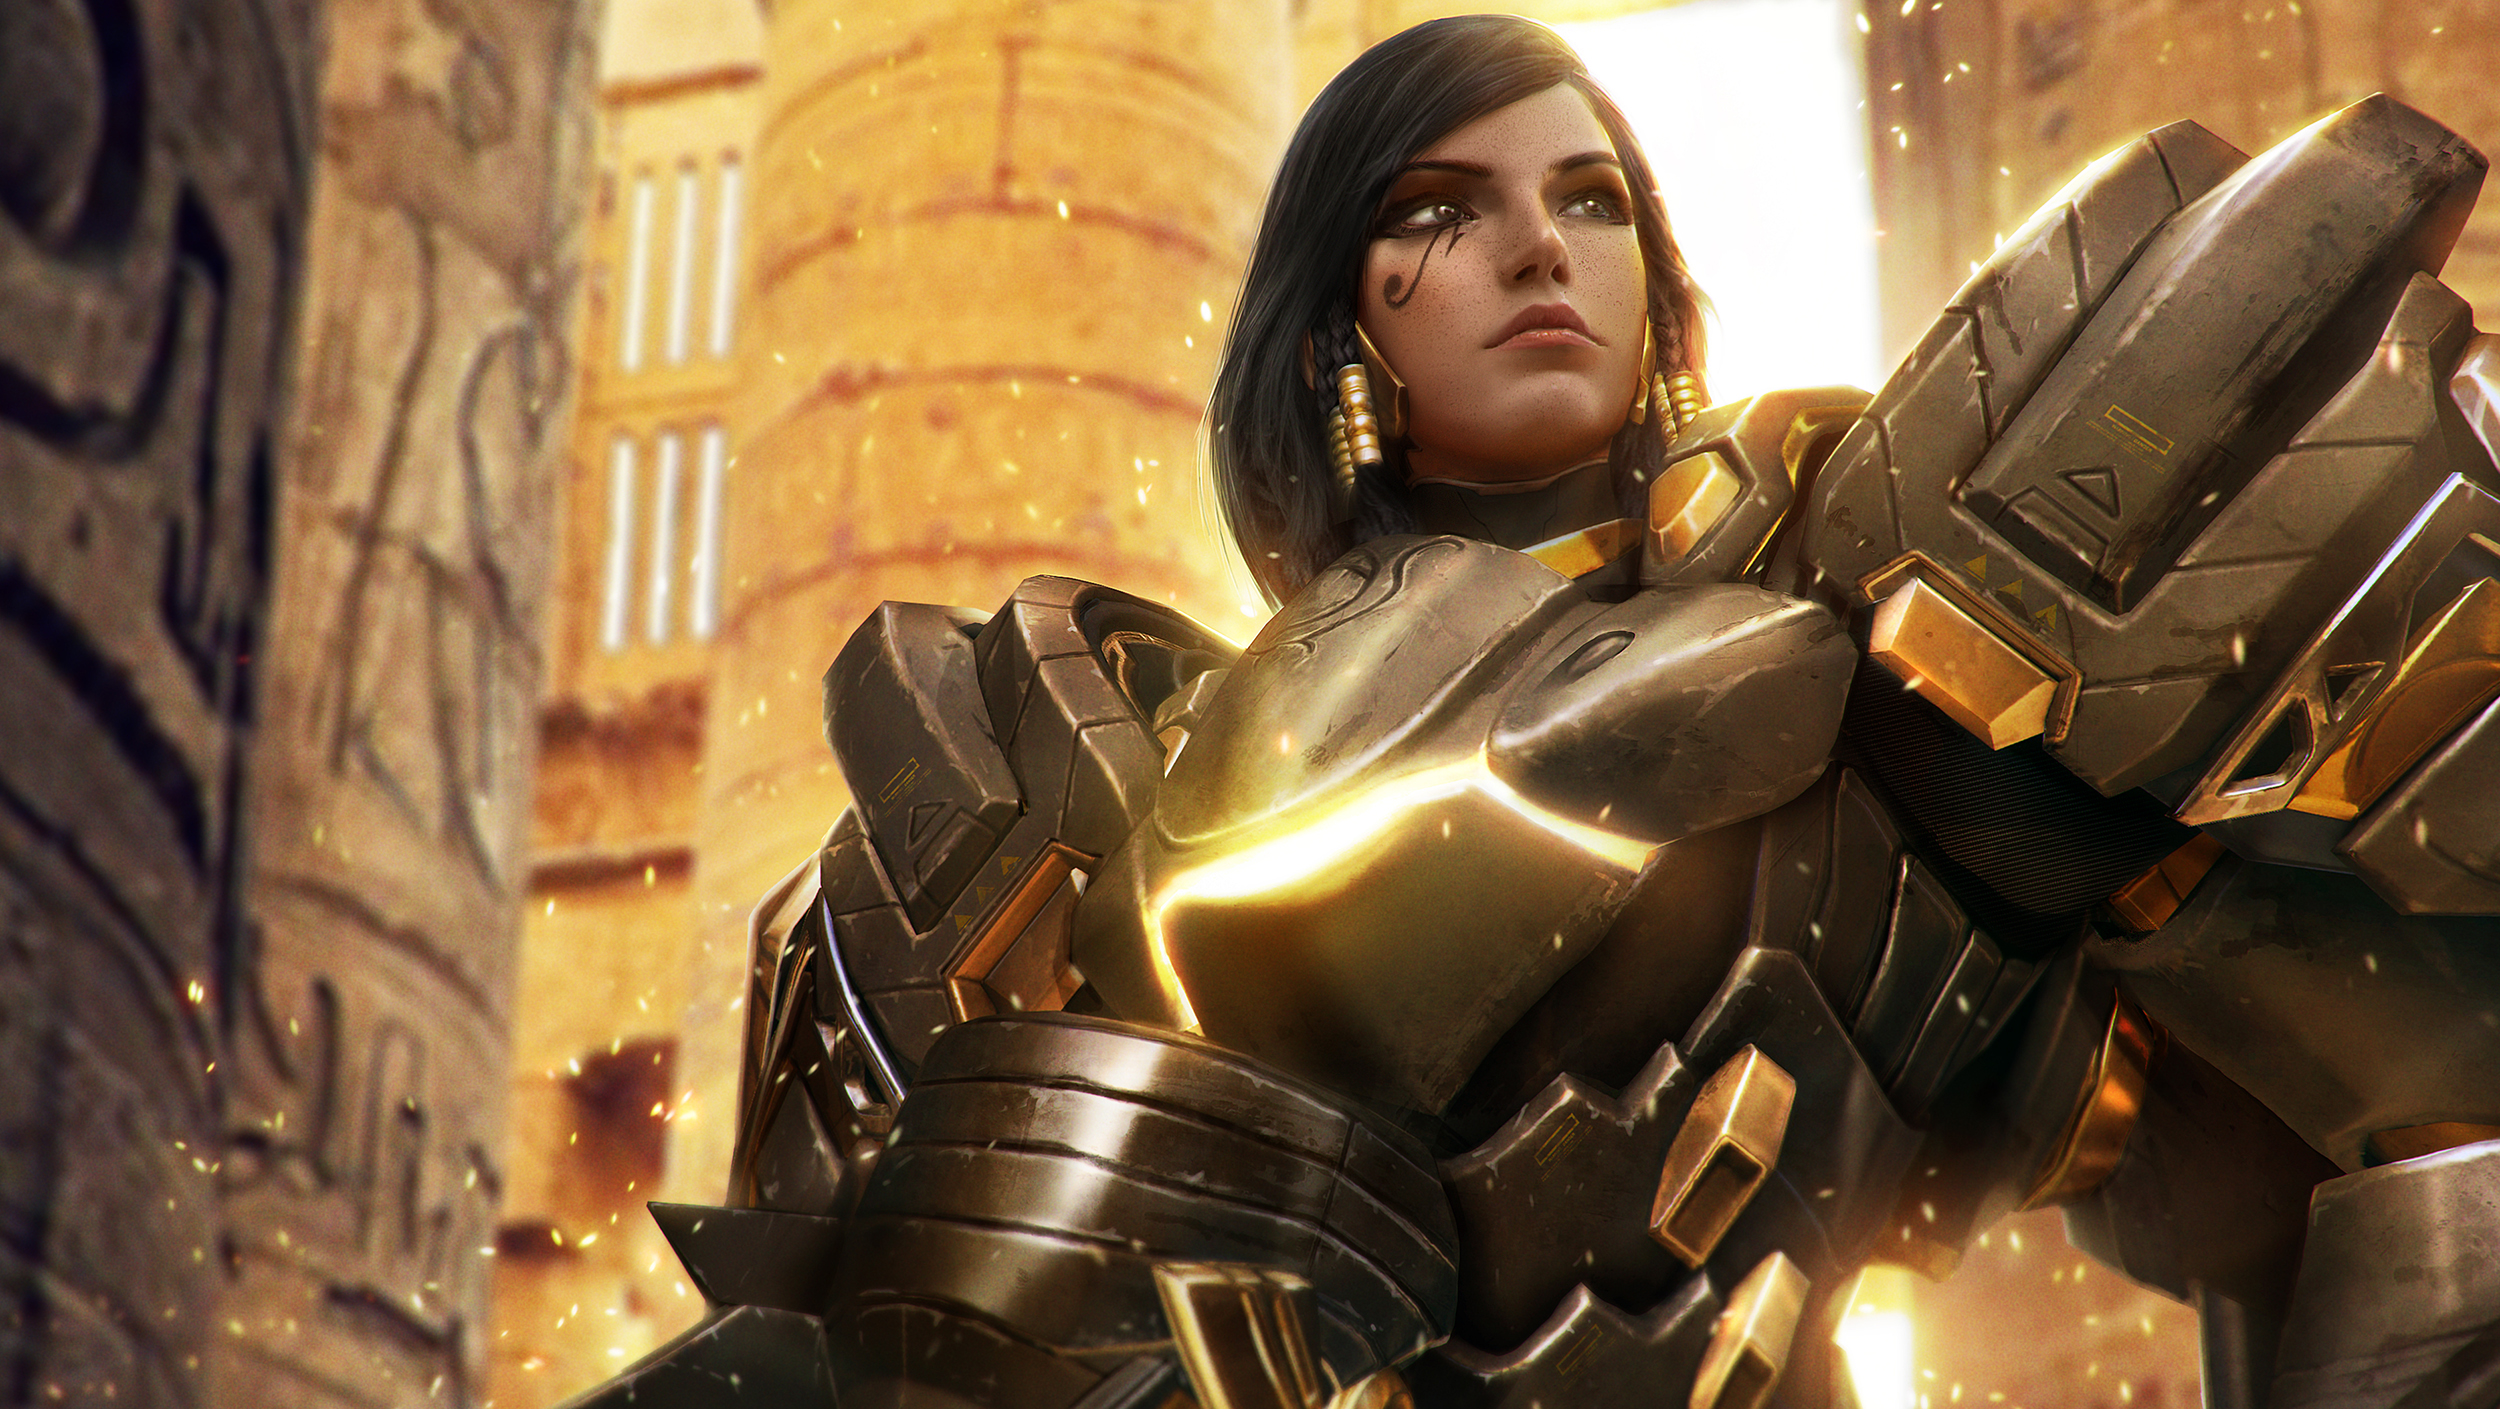 93 Pharah Overwatch Hd Wallpapers Background Images Wallpaper